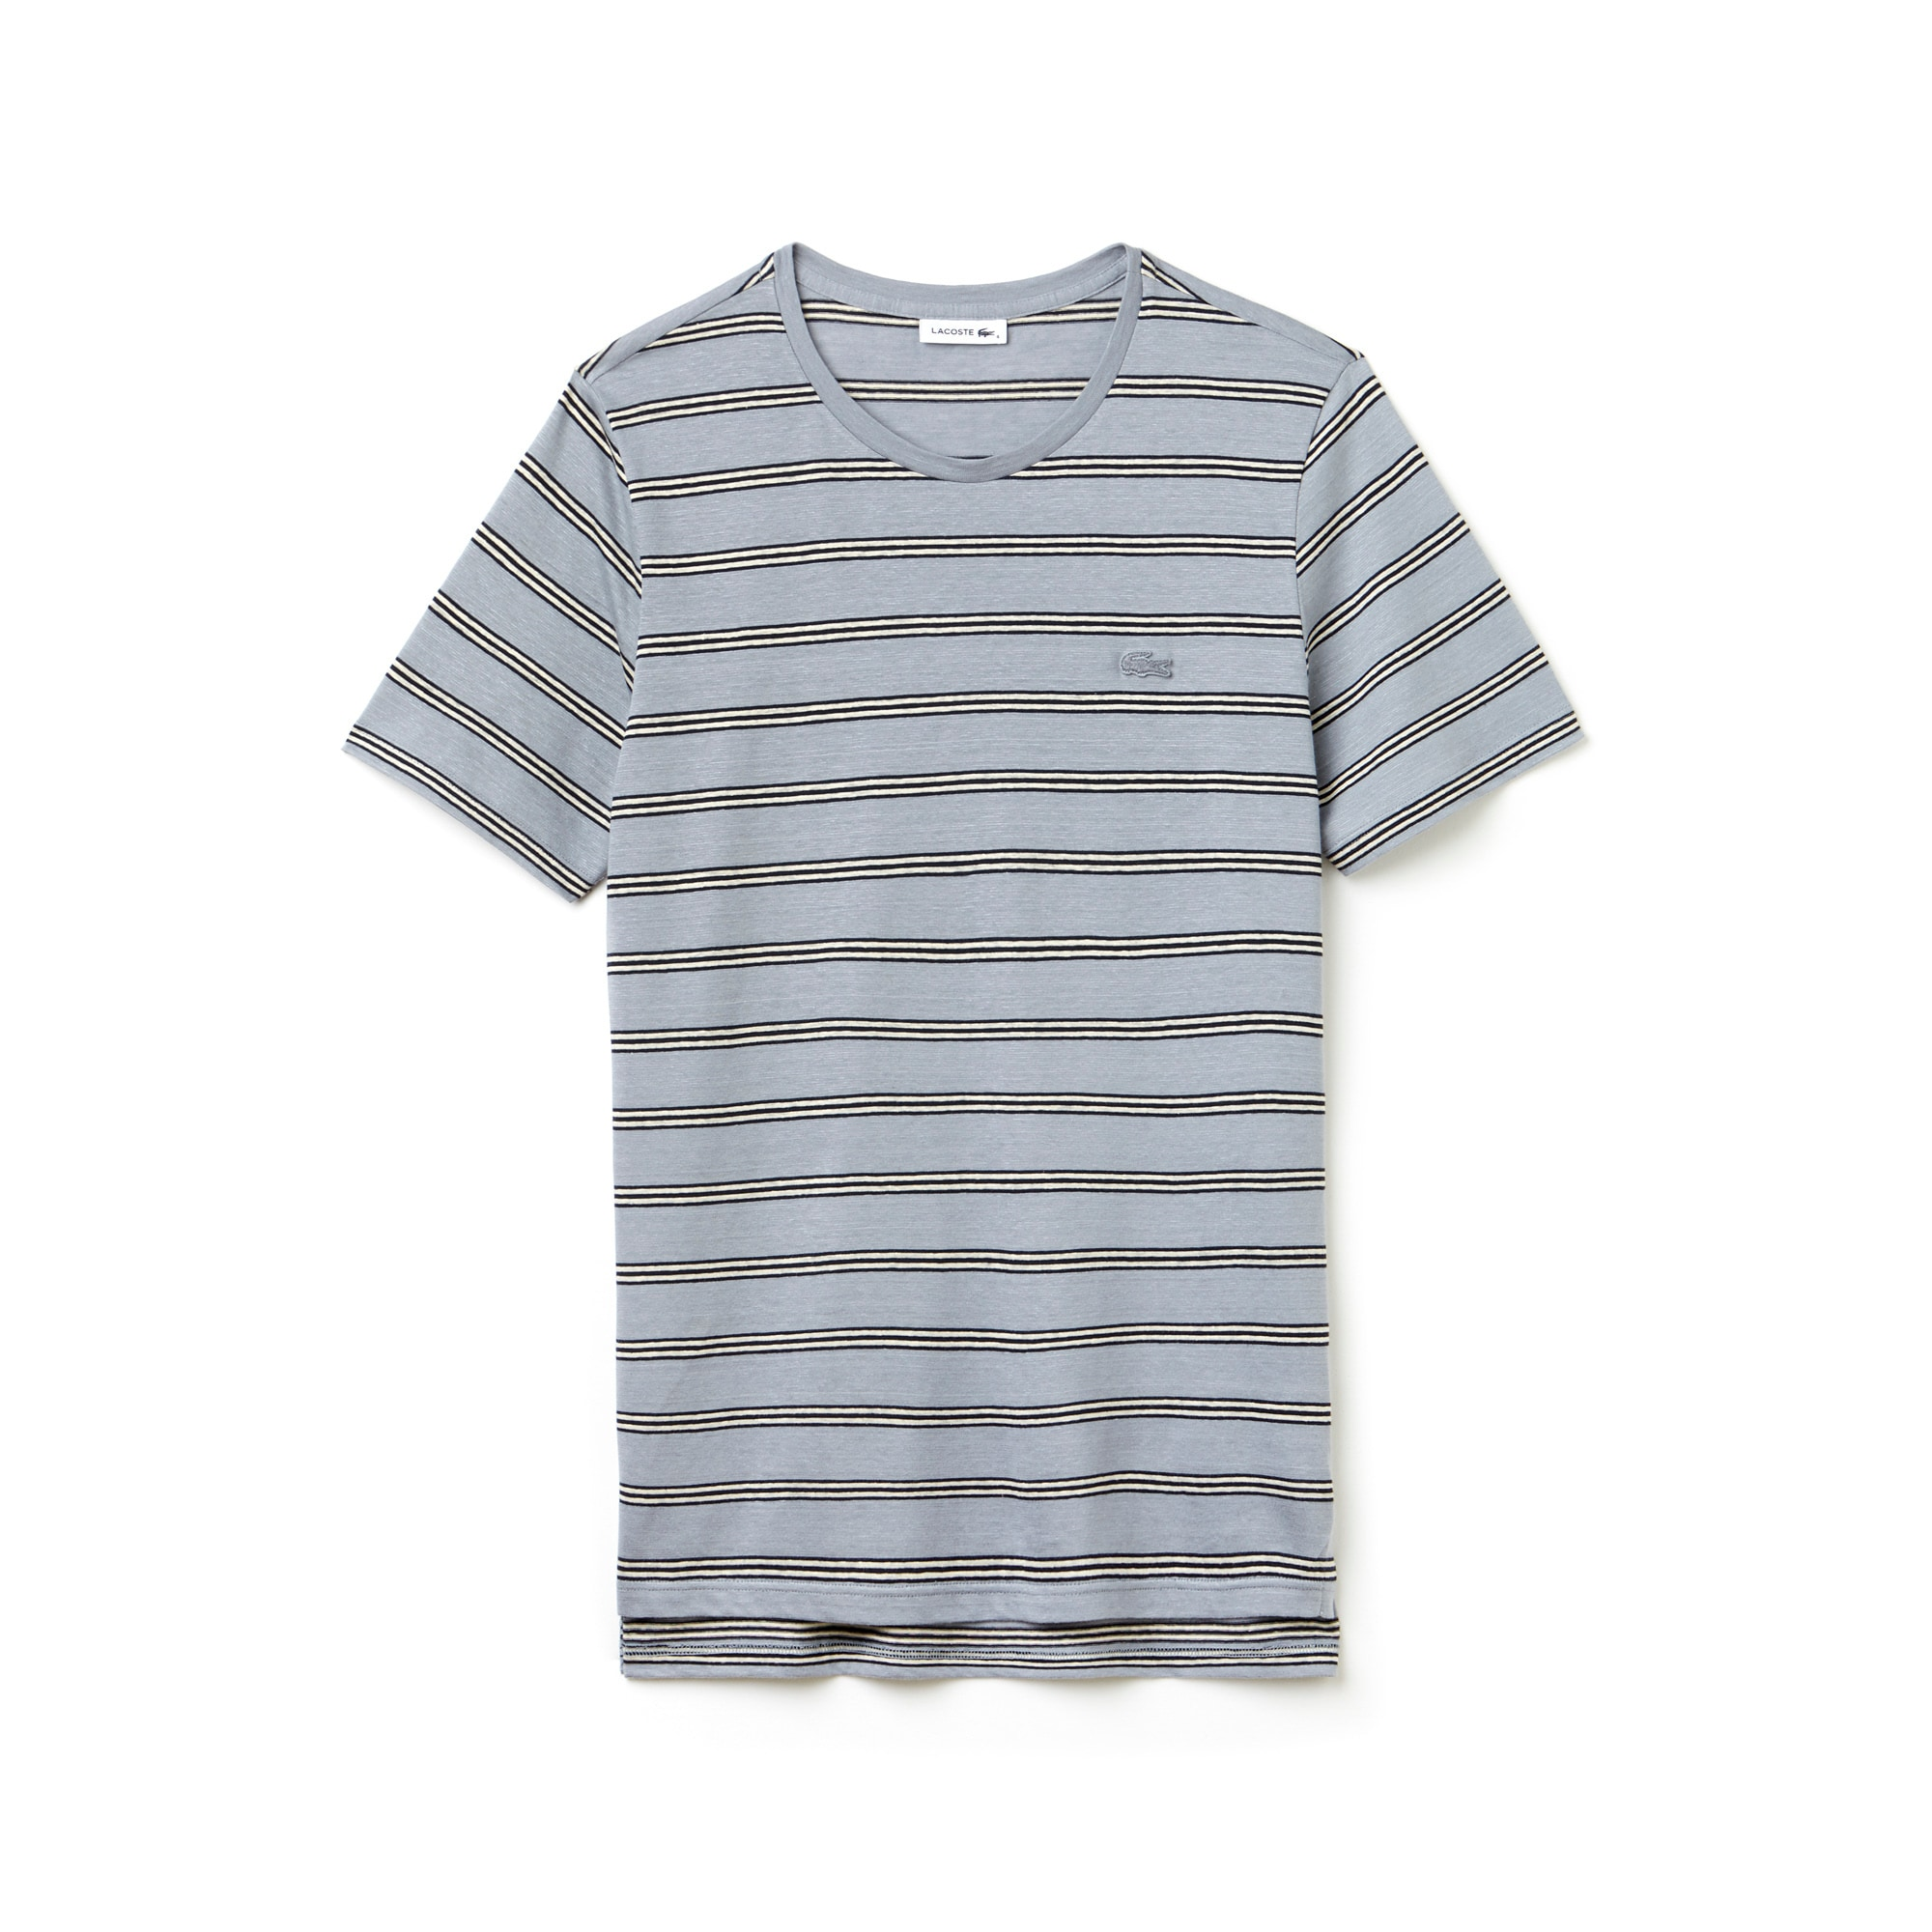 Men's Fashion Show Jersey Striped T-Shirt | LACOSTE